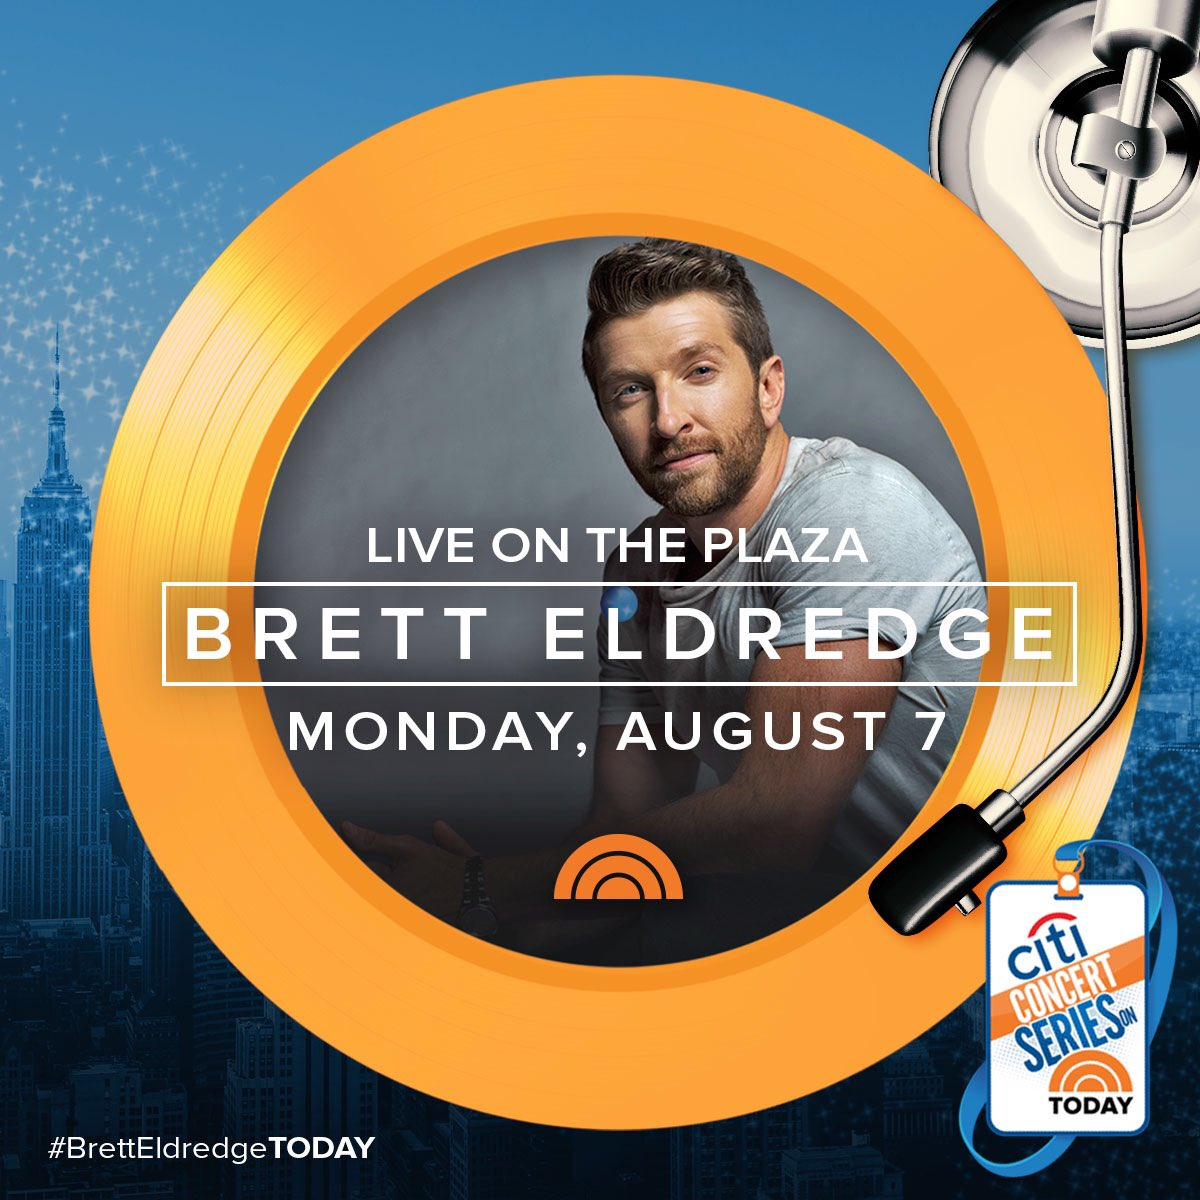 Brett Eldredge On Twitter So Pumped To Be Part Of The Citi Concert